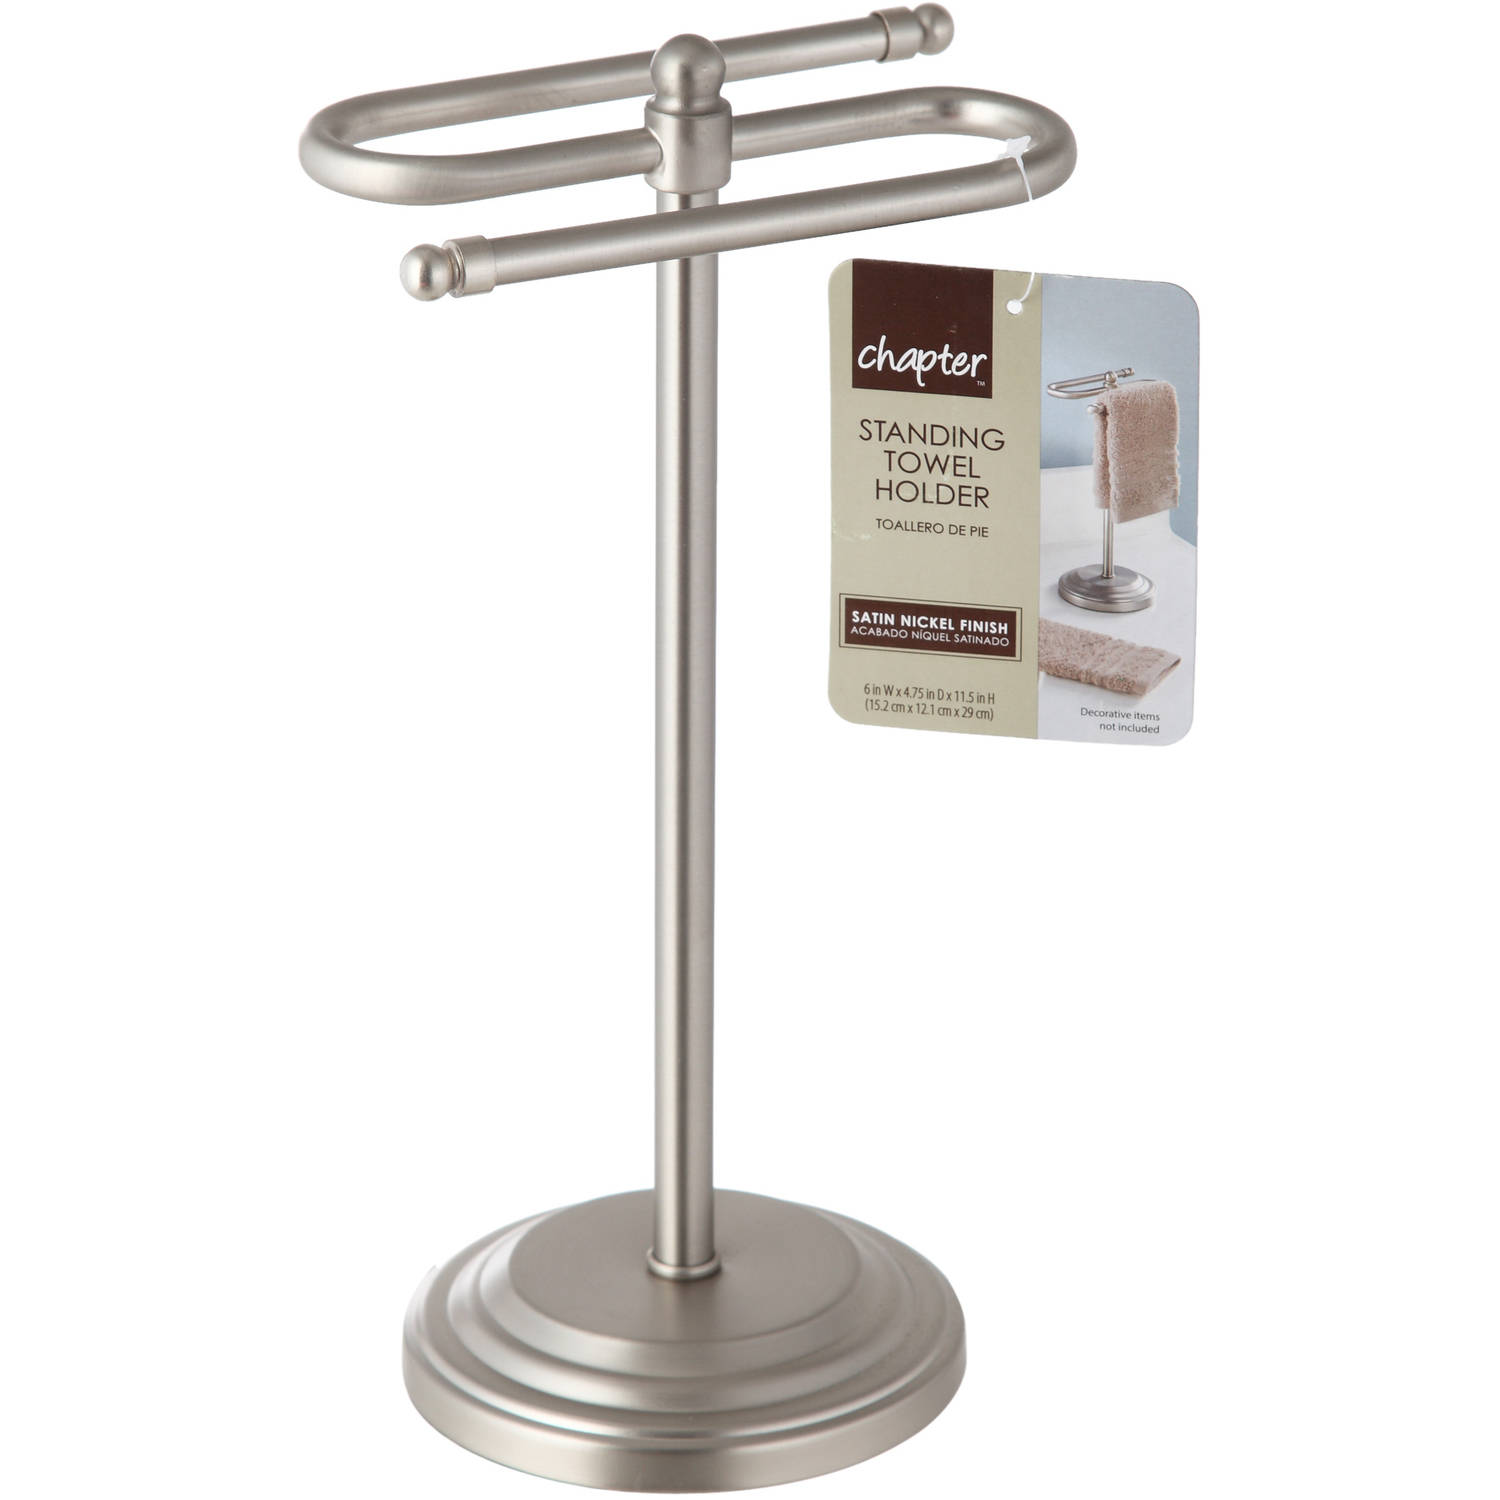 Chapter Free-Standing Towel Holder - Satin Nickel